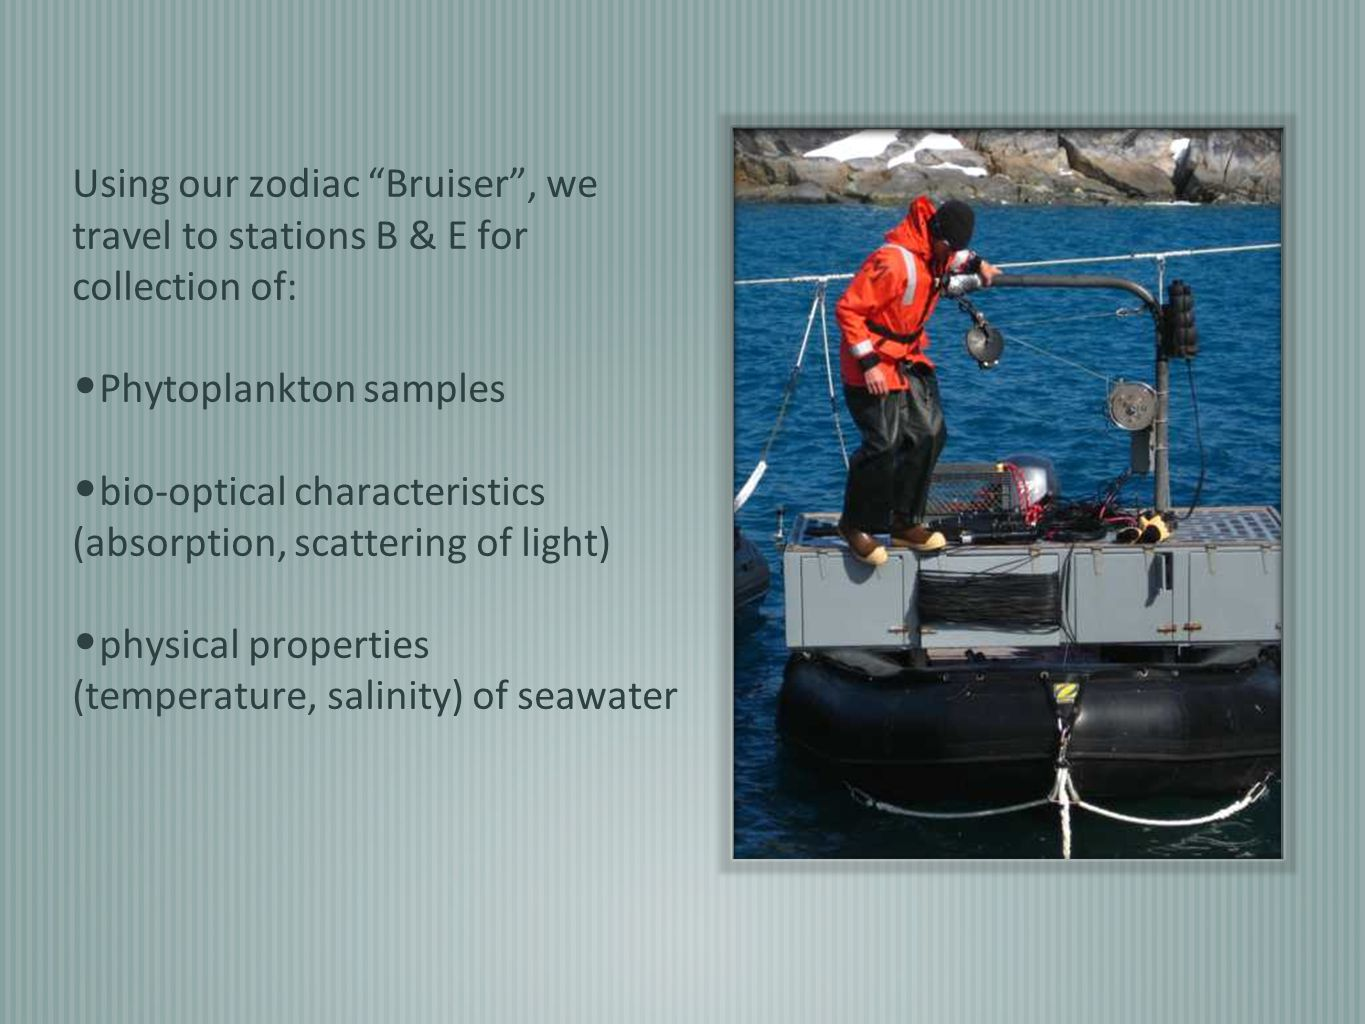 Using our zodiac Bruiser , we travel to stations B & E for collection of: Phytoplankton samples bio-optical characteristics (absorption, scattering of light) physical properties (temperature, salinity) of seawater